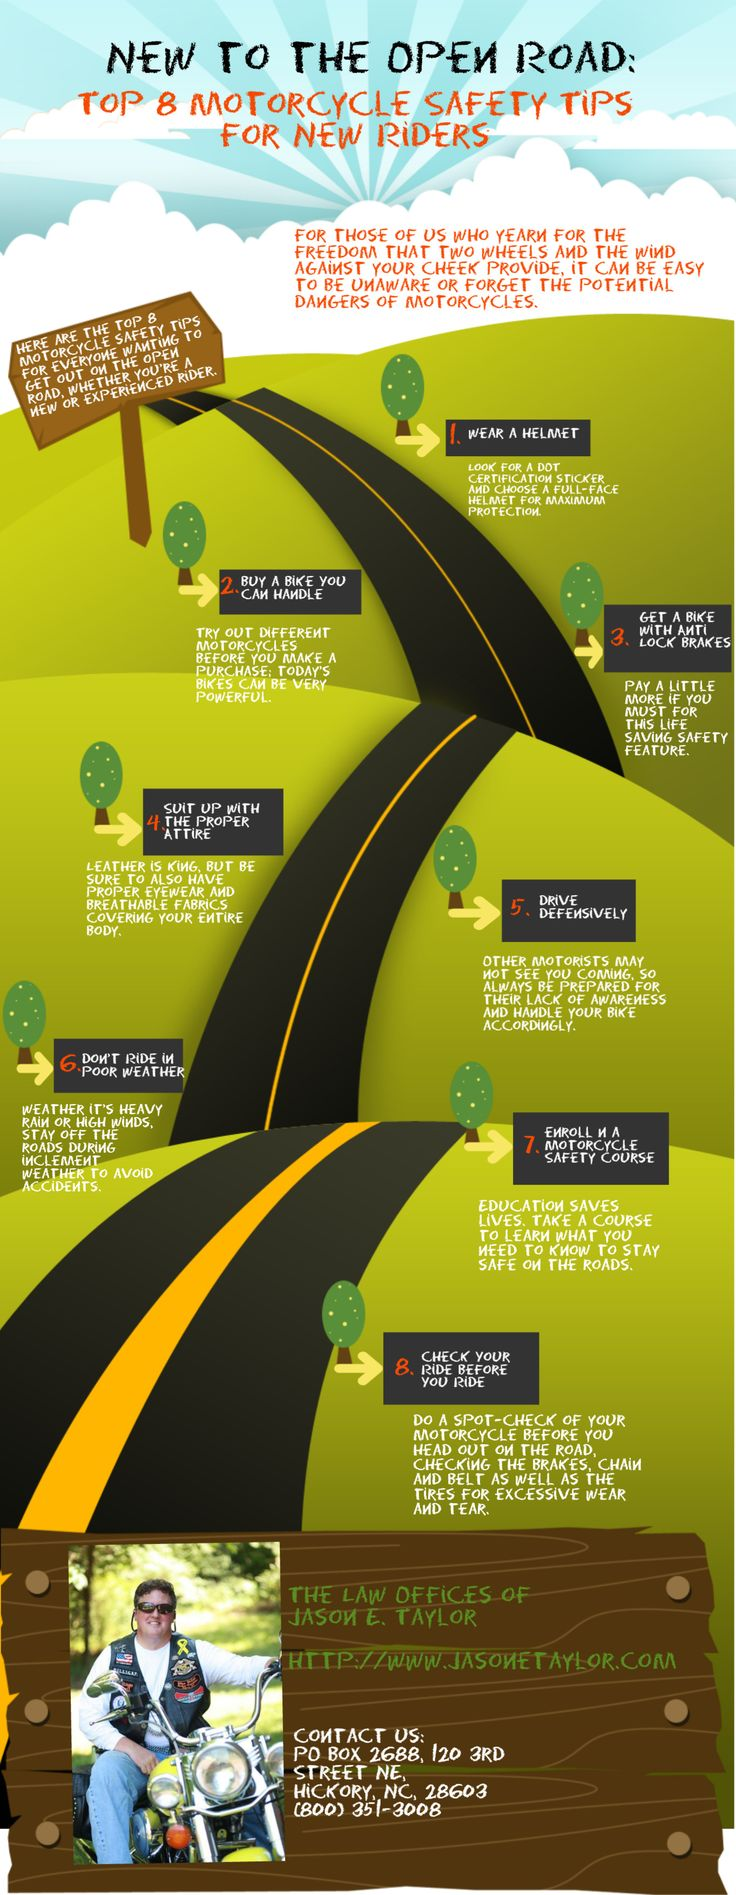 New to the Open Road: Top 8 Motorcycle Safety Tips for New Riders [infographic] http://www.jasonetaylor.com/blog/new-to-the-open-road-top-8-motorcycle-safety-tips-for-new-riders-infographic/